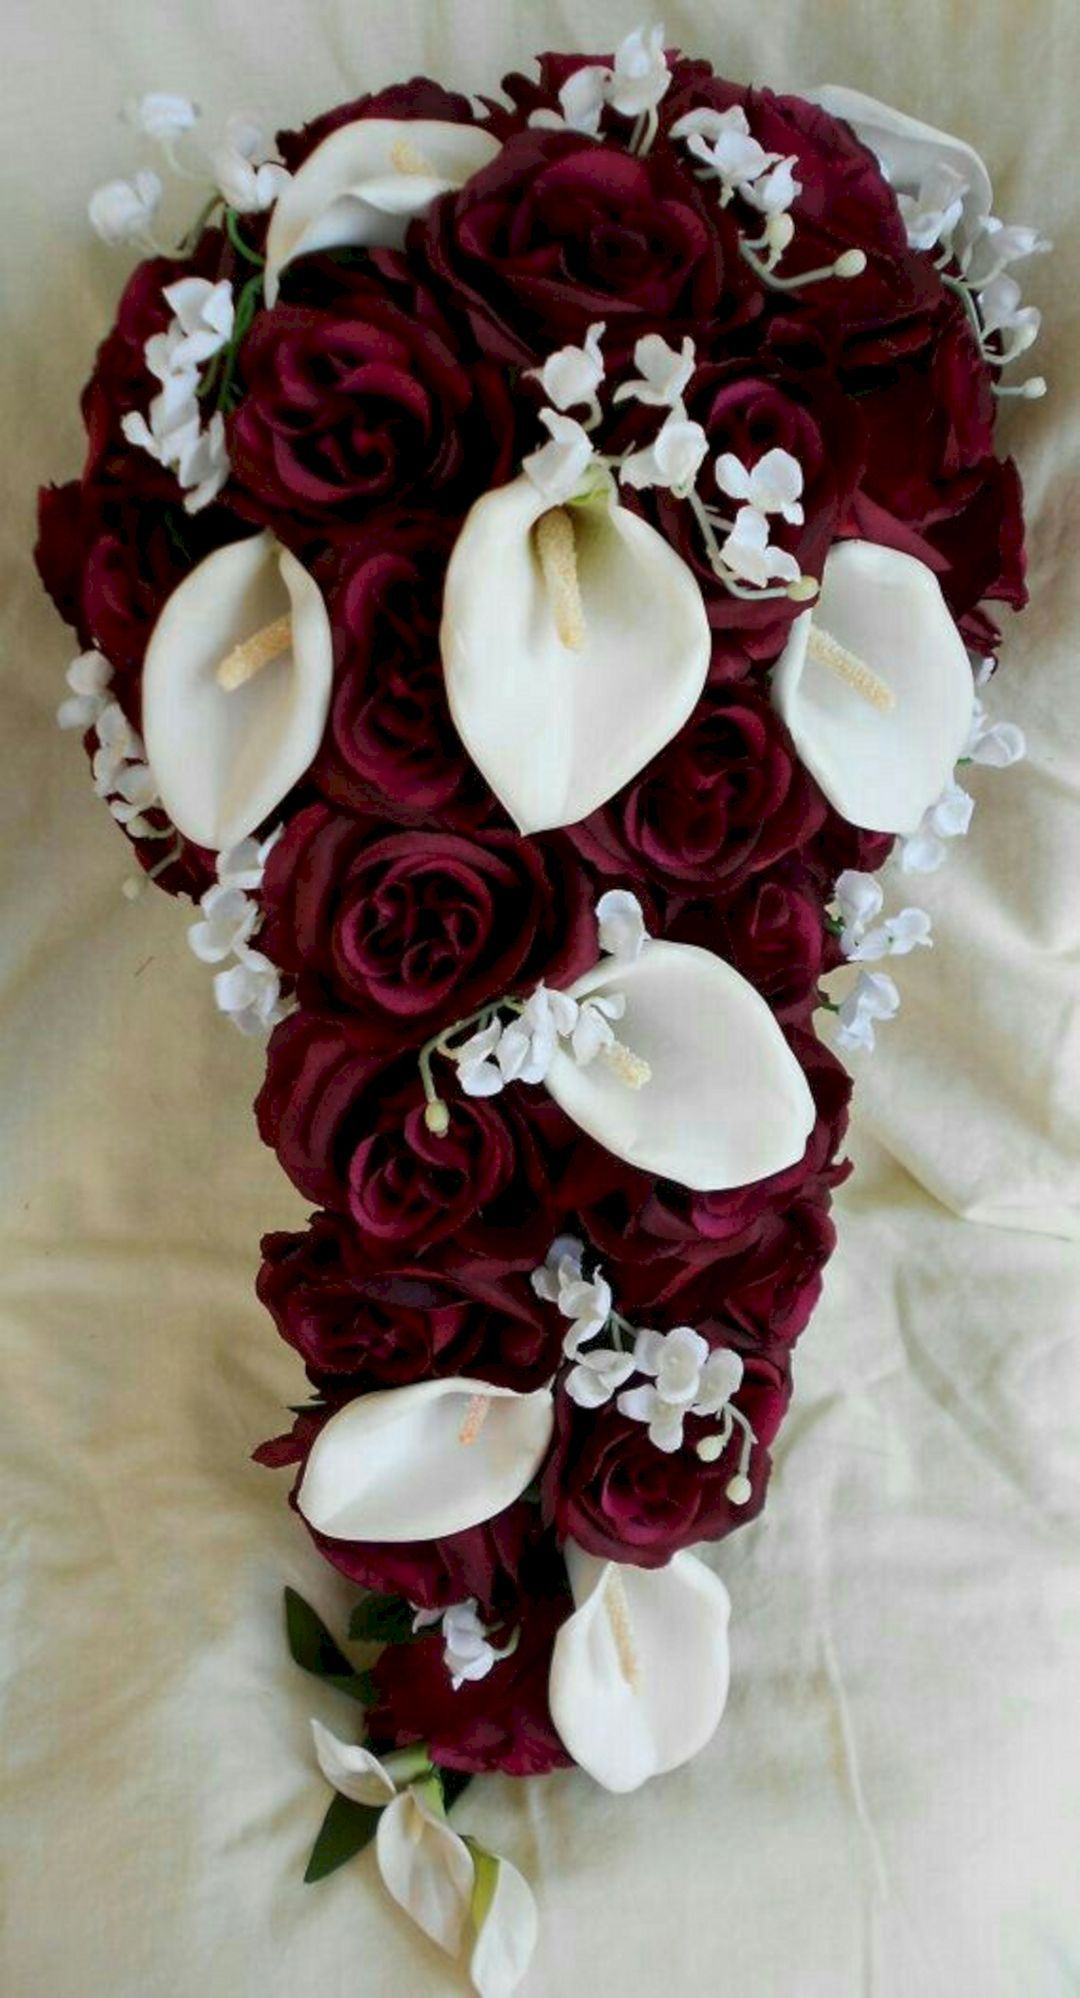 55 beautiful white flower arrangements in your wedding white silk cascade burgundy and white bridal bouquet roses calla lilies and lilies of the valley 2 pc i would want navy roses instead mightylinksfo Choice Image